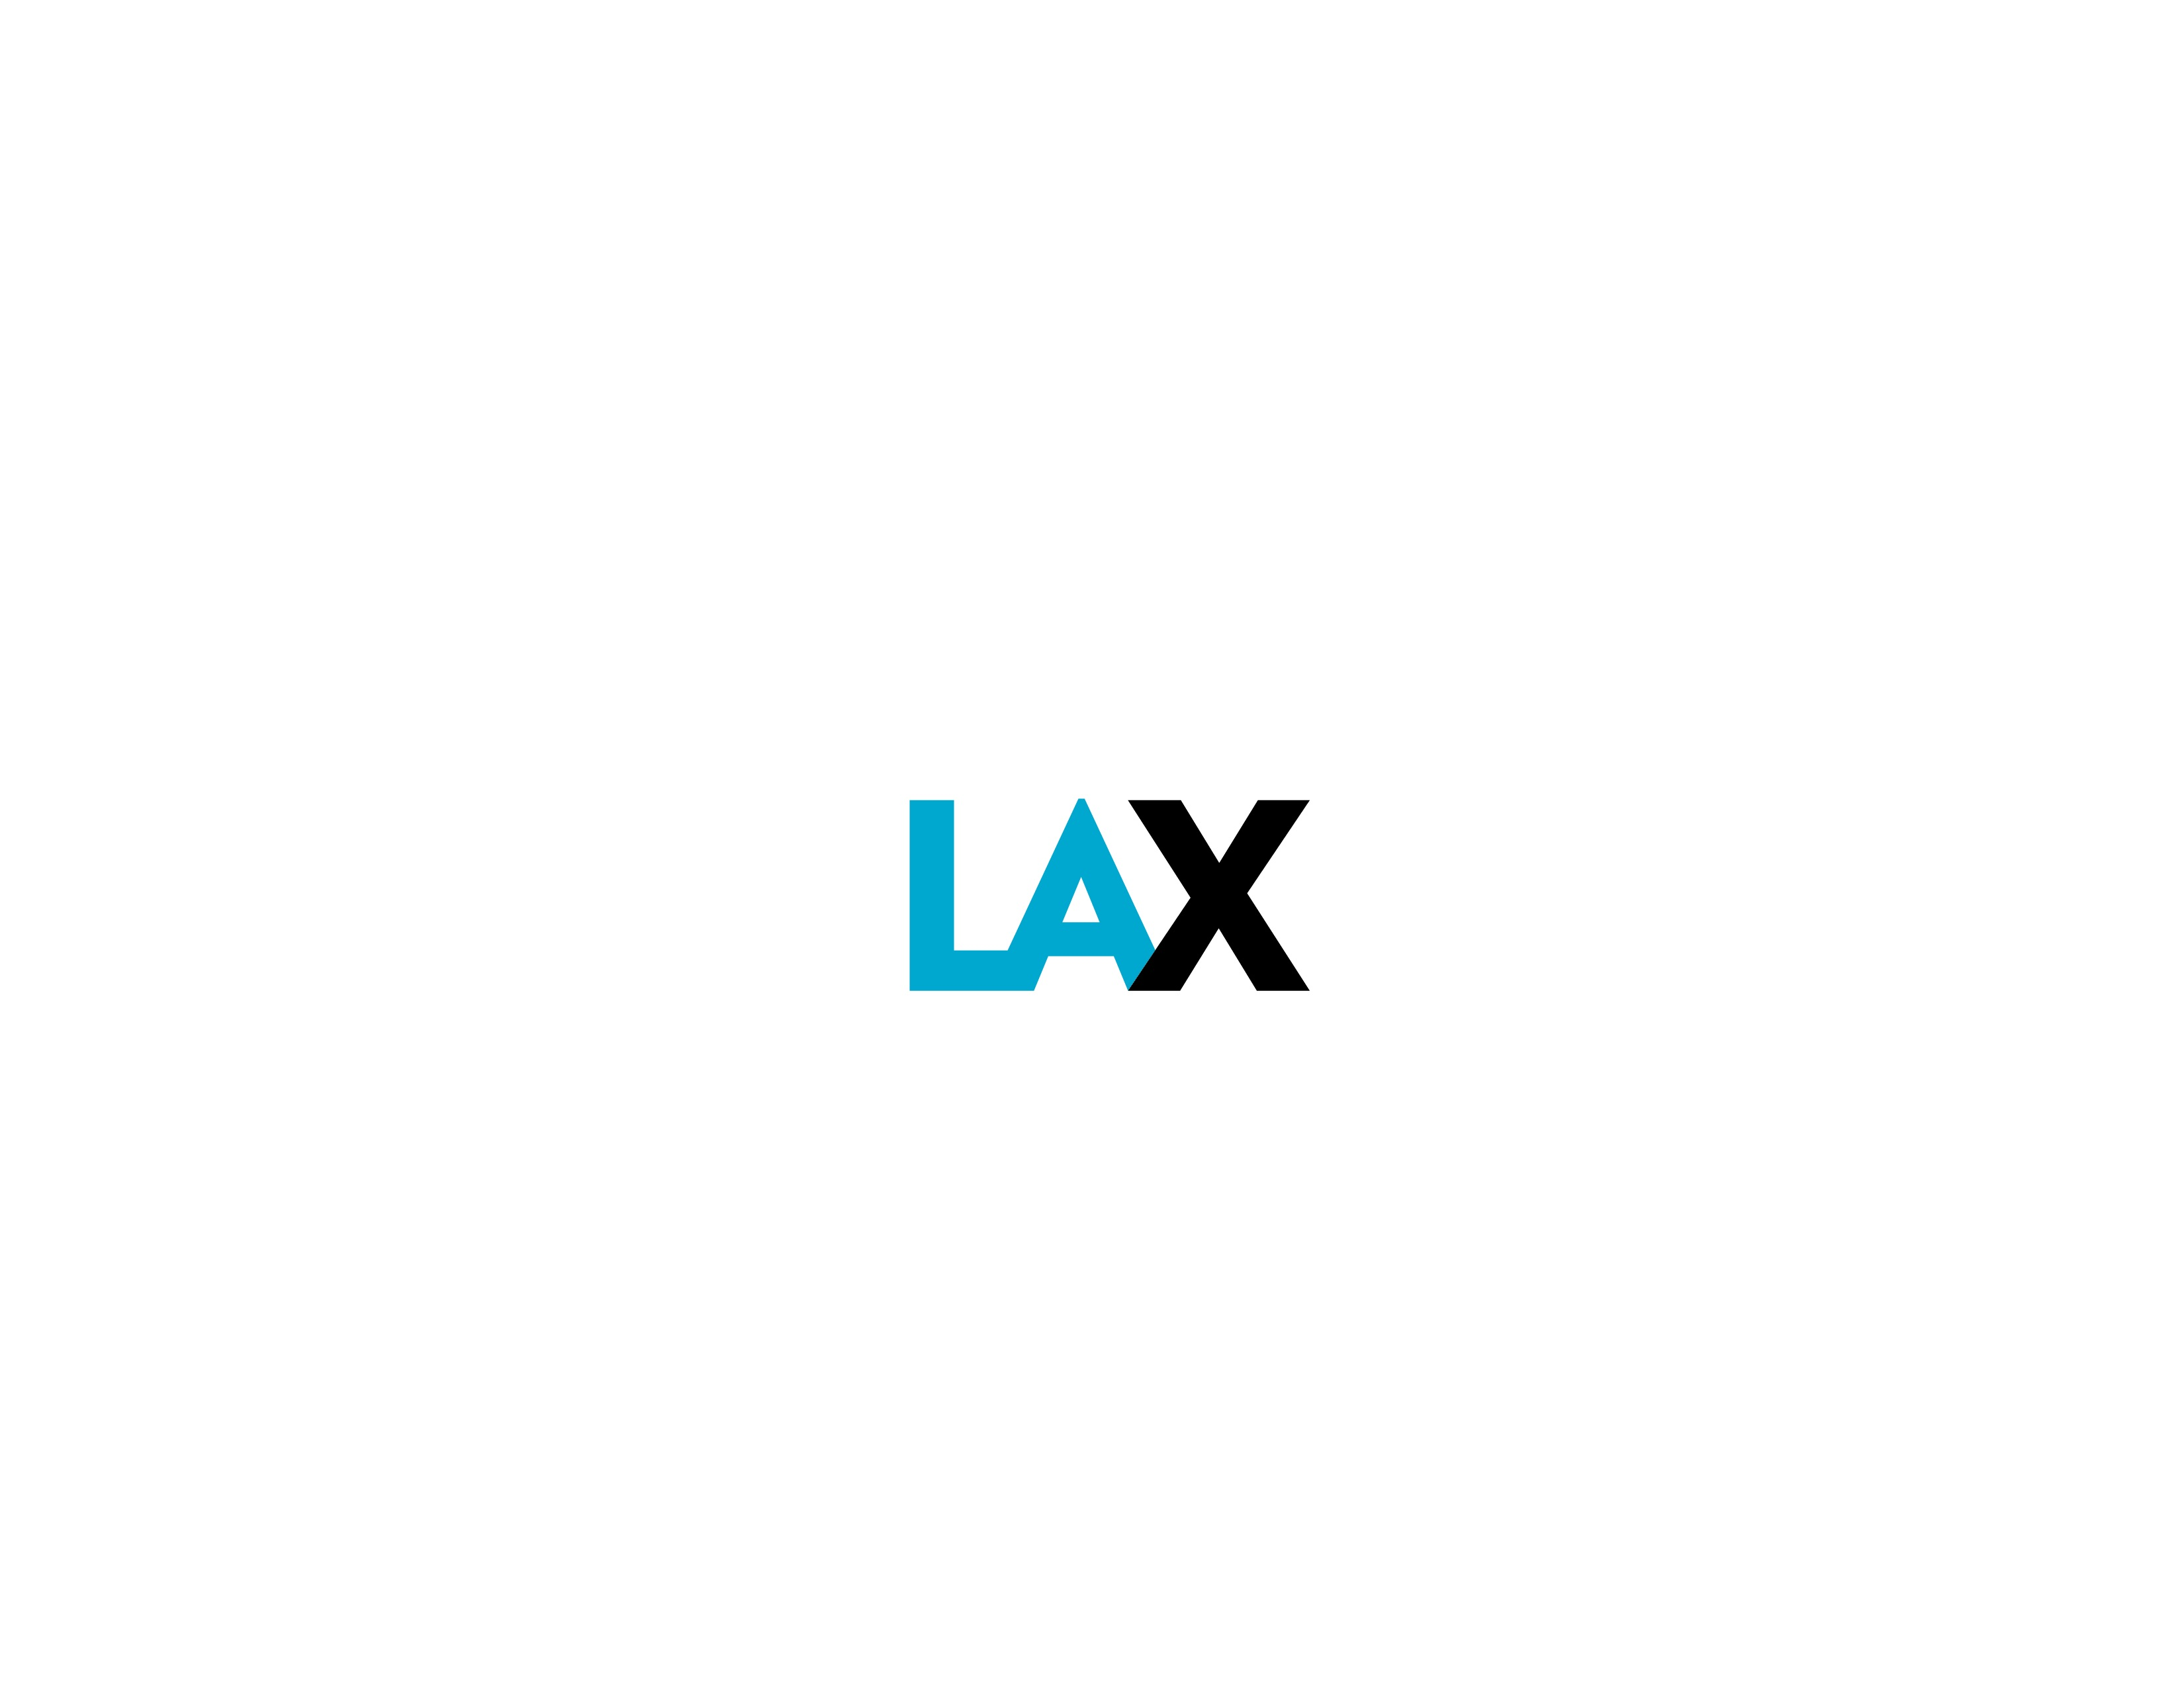 LAX Official Site | Traffic and Ground Transportation on museum of flight lax, map of los angeles and lax, flight path museum lax,